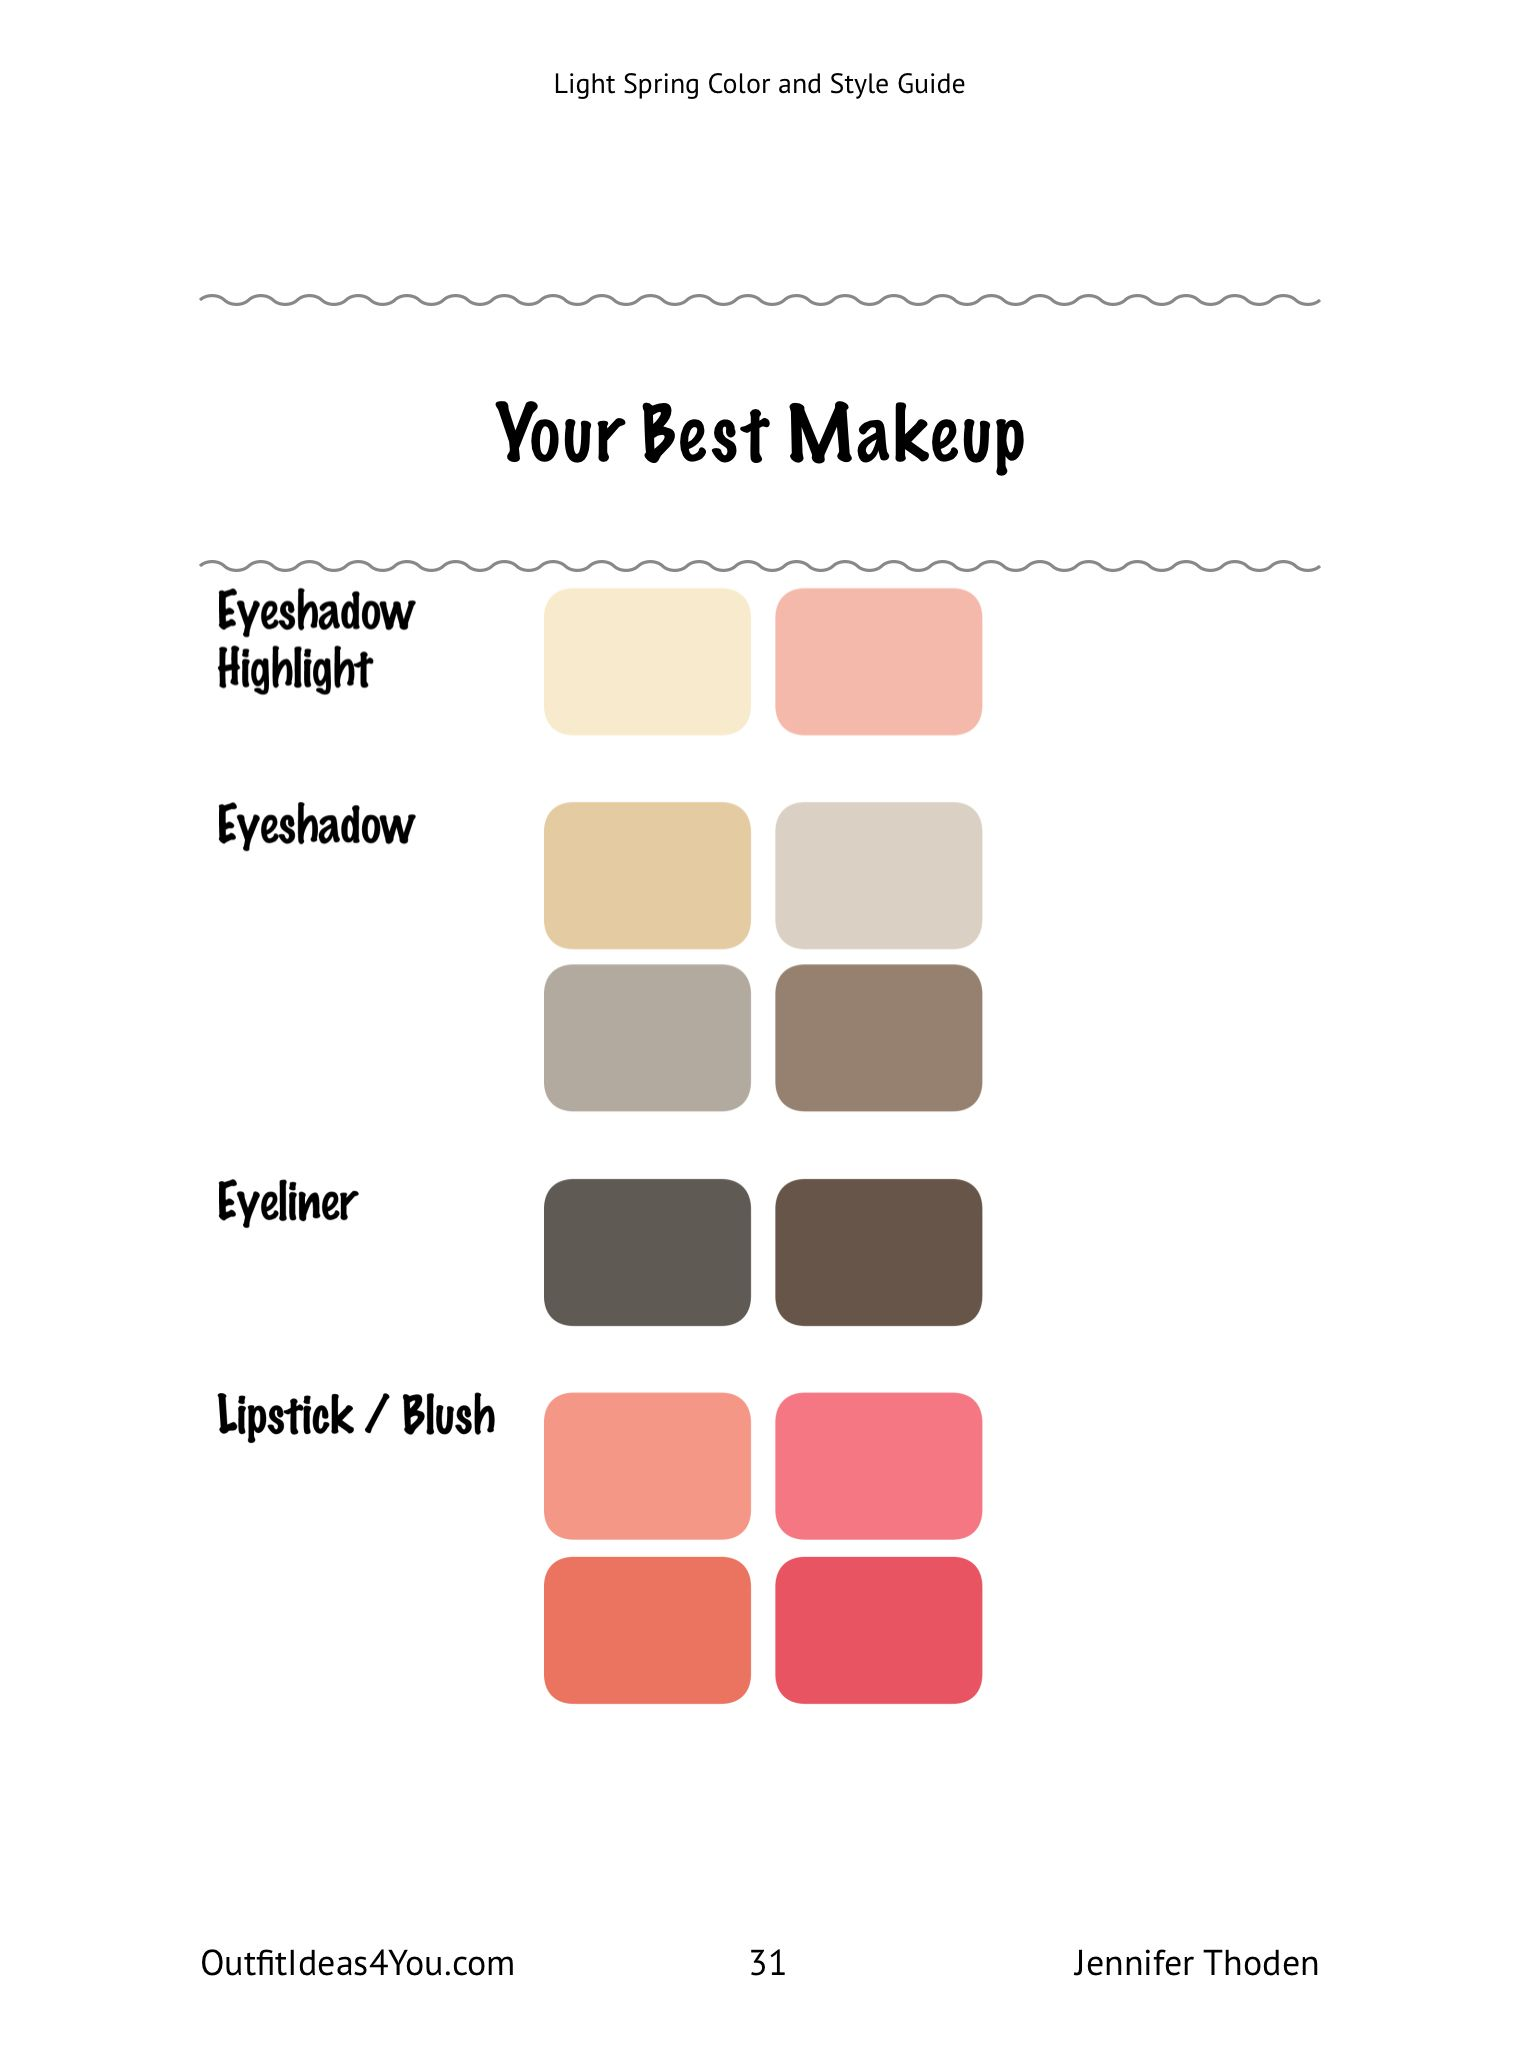 Light Spring Color And Style Guide By Jennifer Thodon With